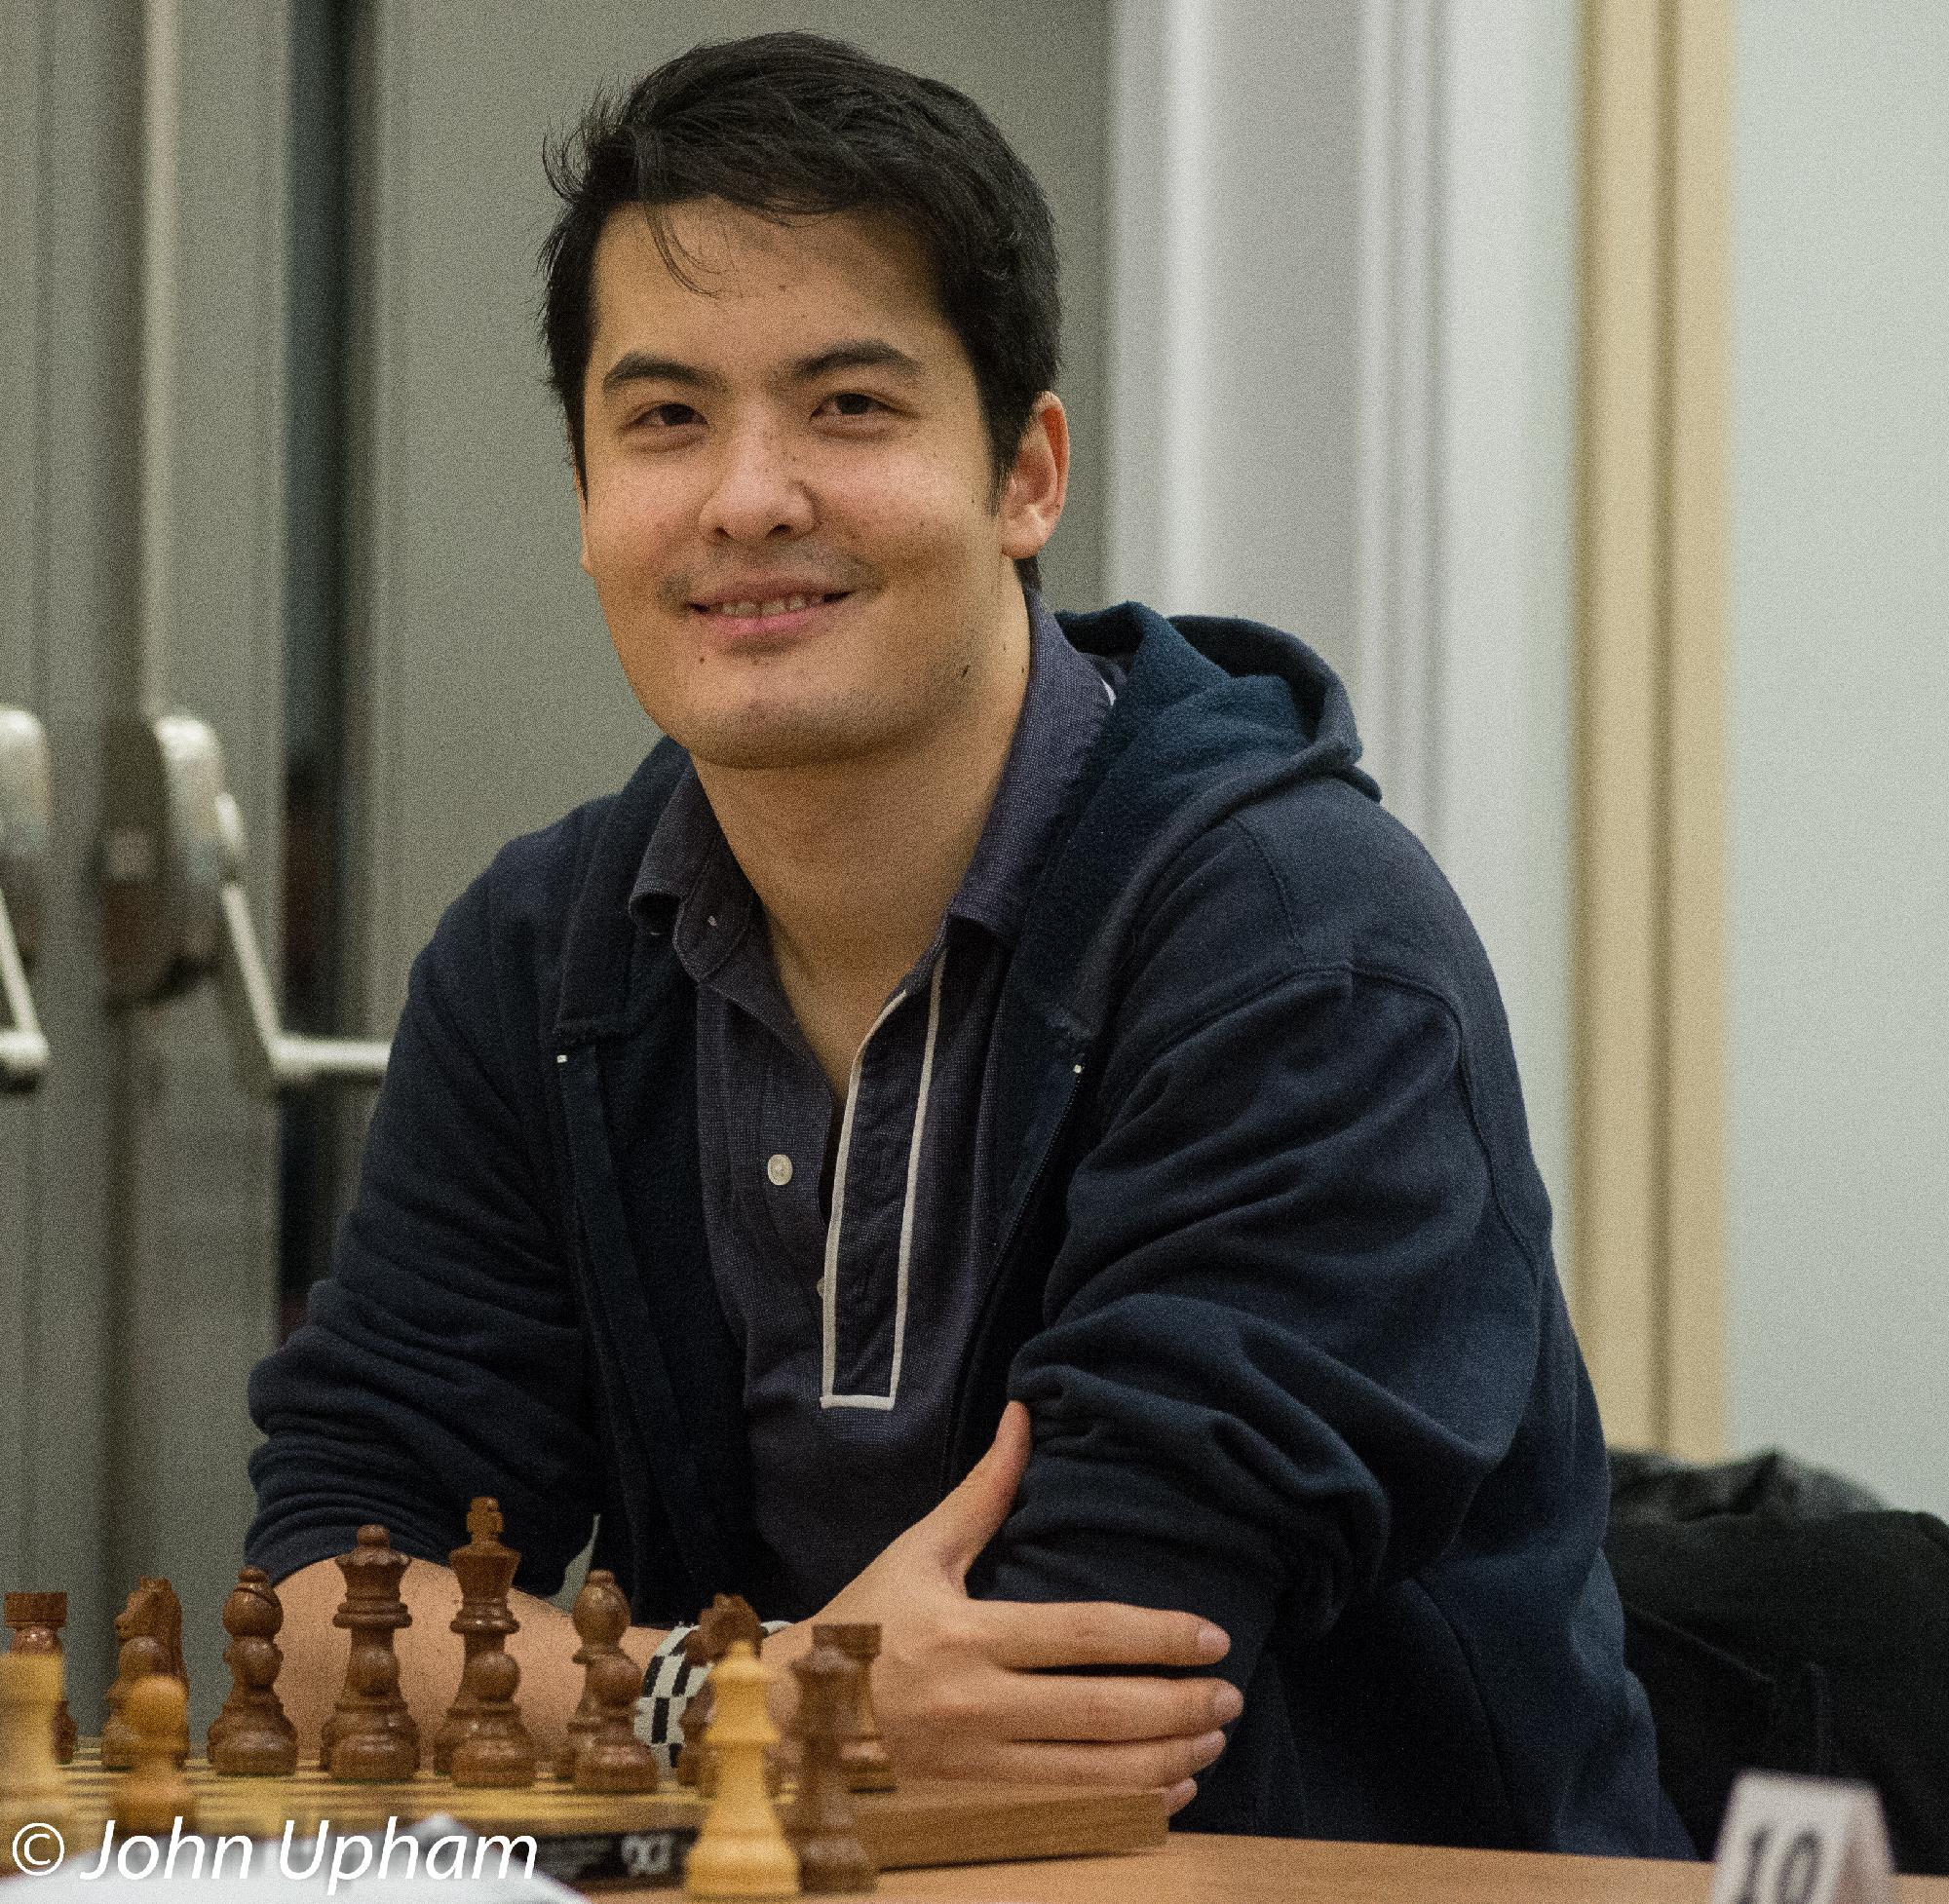 David Howell at the 2014 London Chess Classic, Courtesy of John Upham Photography